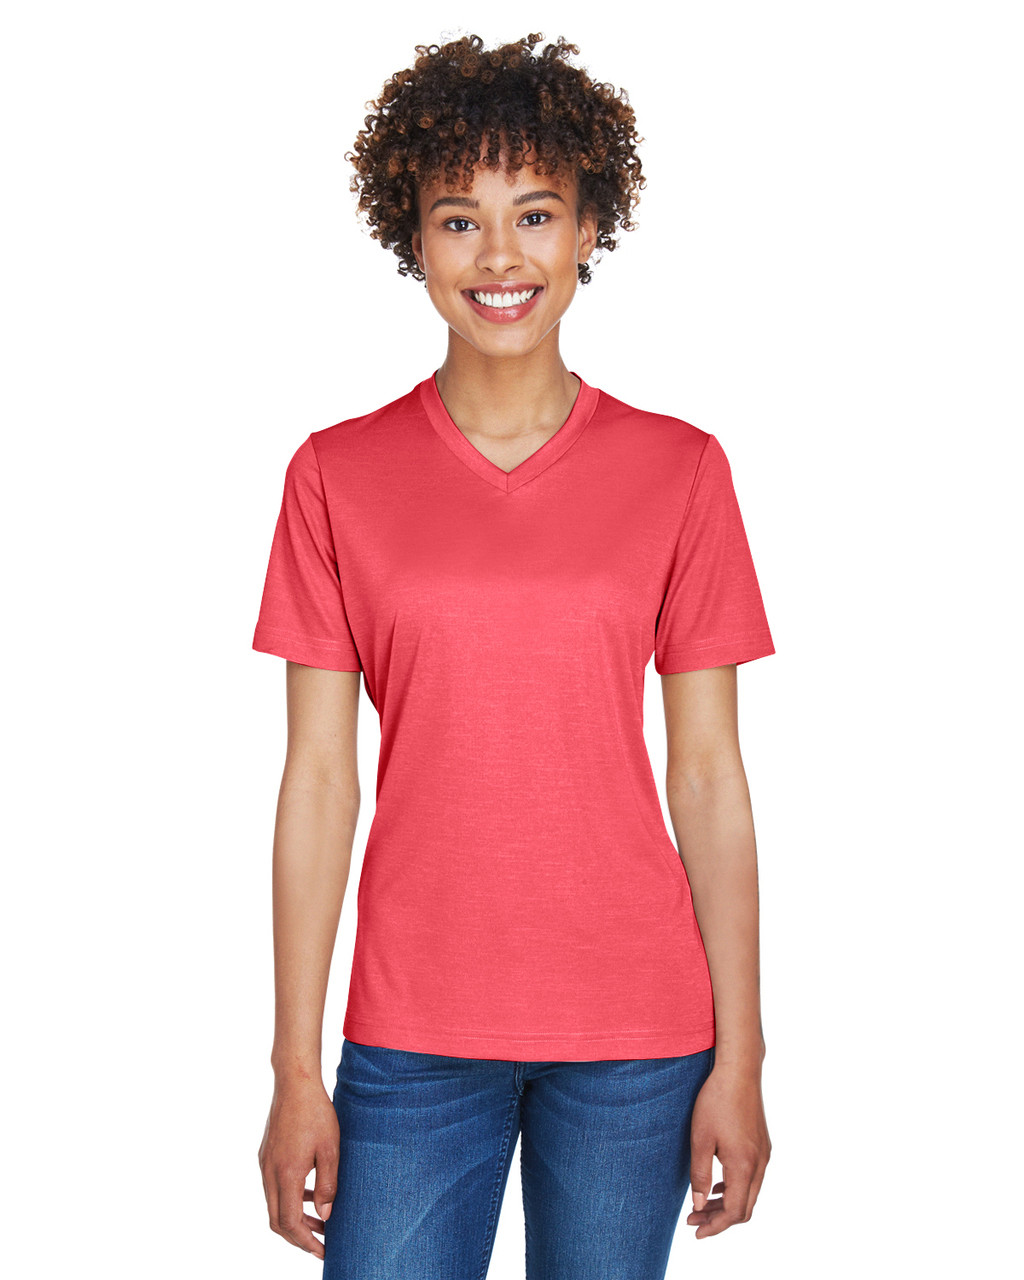 Sport Red Heather - TT11HW Team 365 Ladies' Sonic Heather Performance T-Shirt | BlankClothing.ca